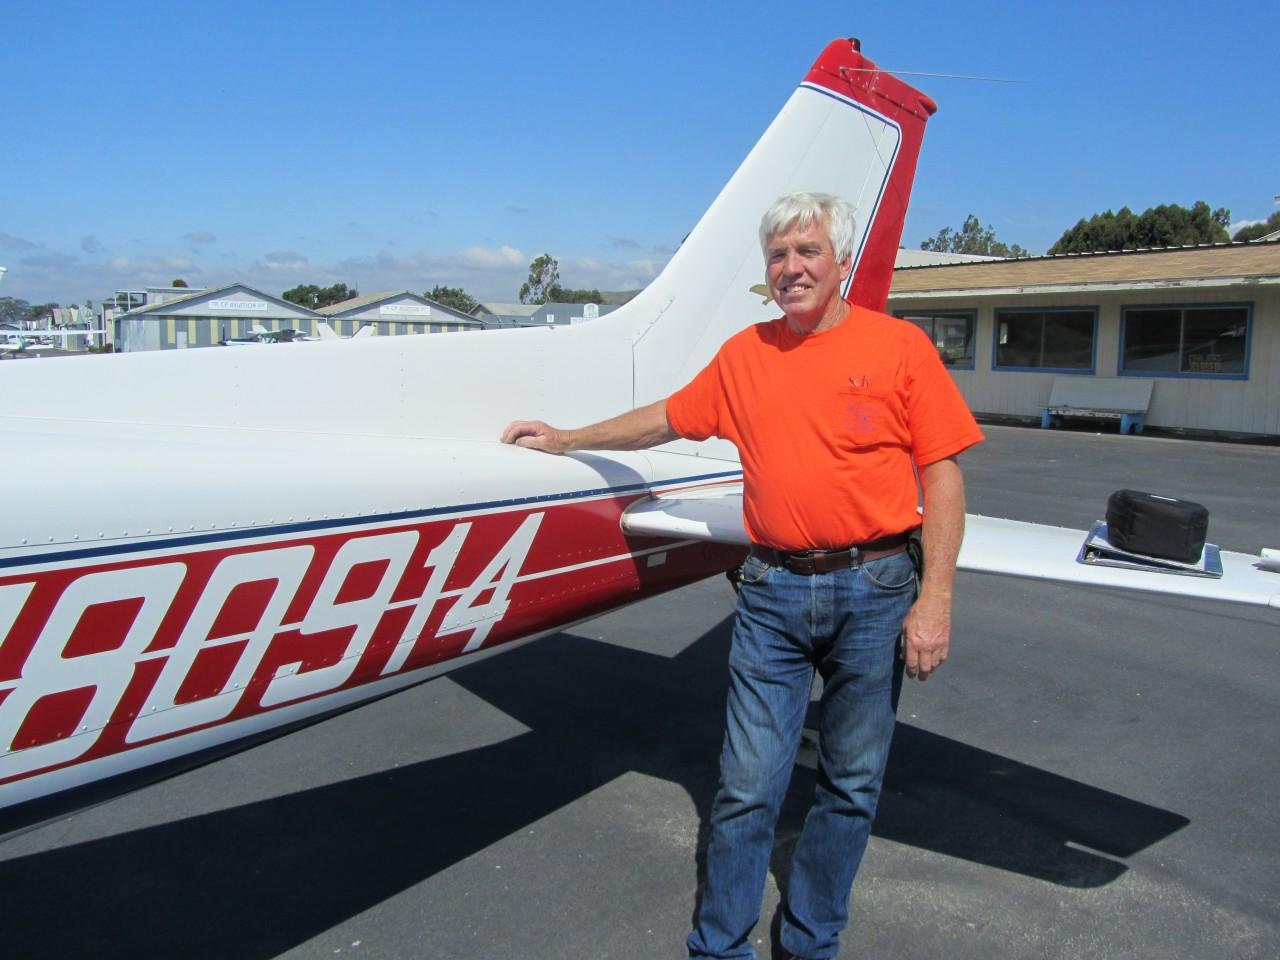 First Solo - Phil Long!